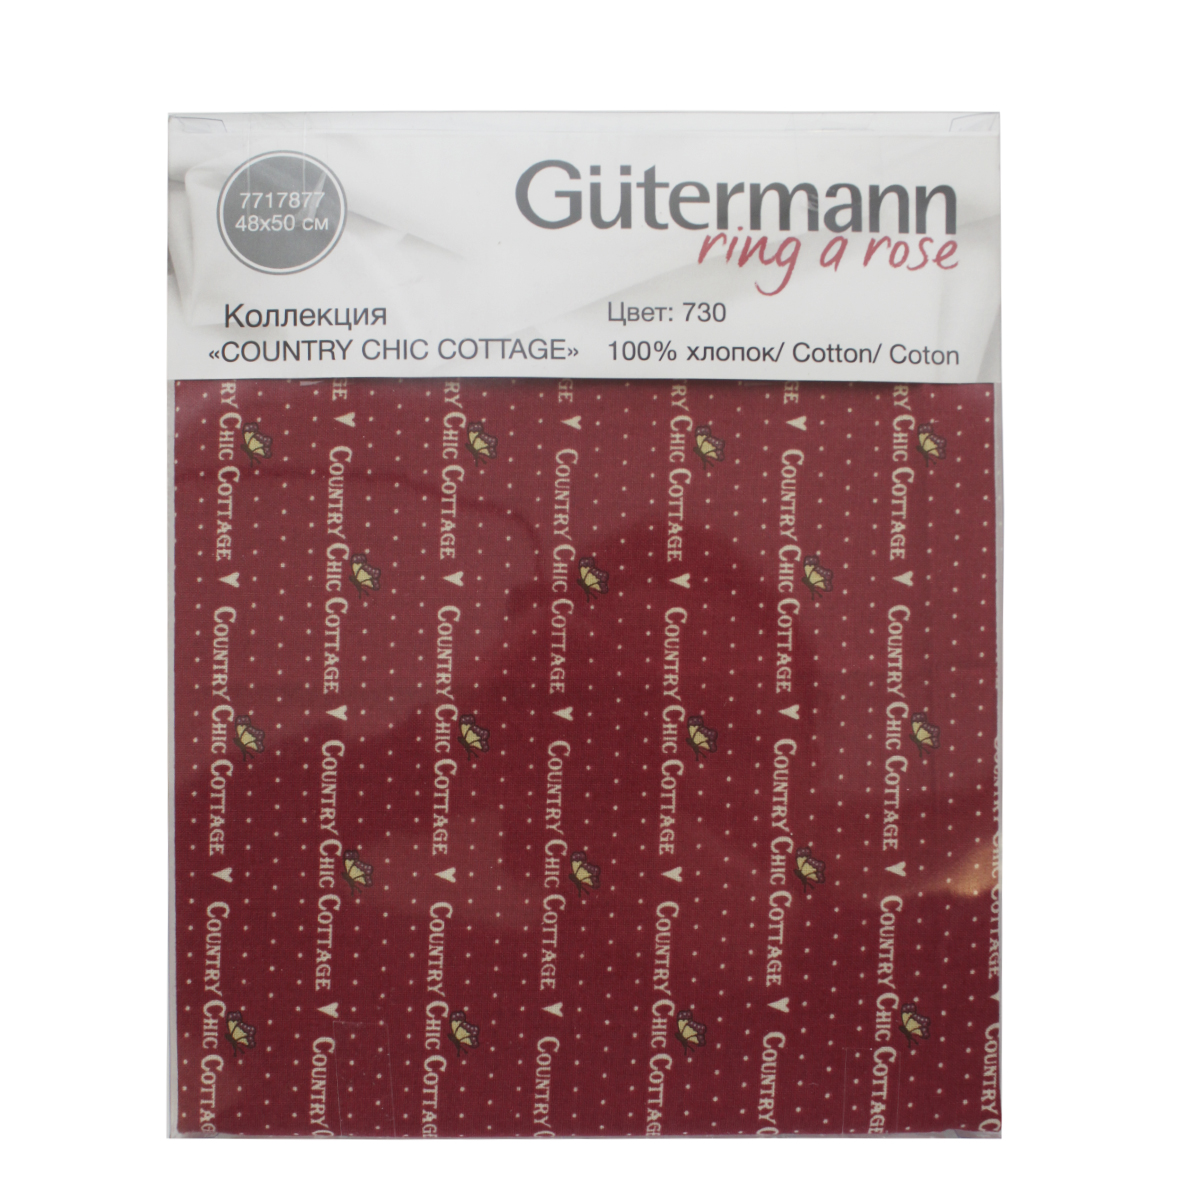 Ткань Gutermann Country Chic Cottage, 48 х 50 см. 649384_730 ткань gutermann pemberly 48 х 50 см 649101 844